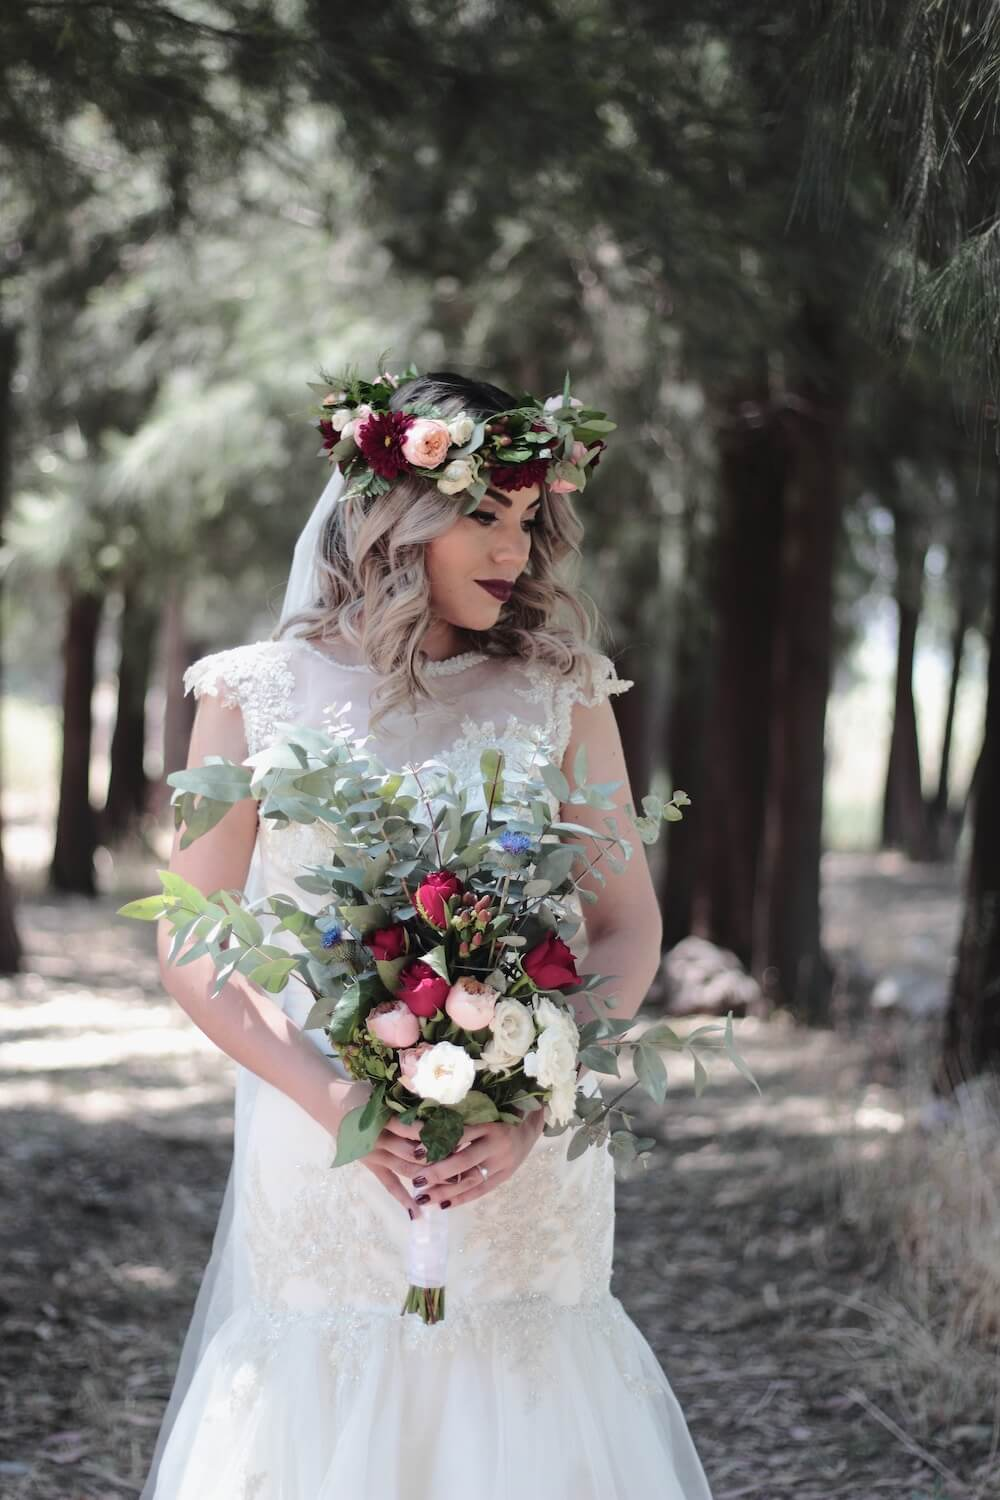 Woman wearing weddingdress and flower crown carrying large bouquet